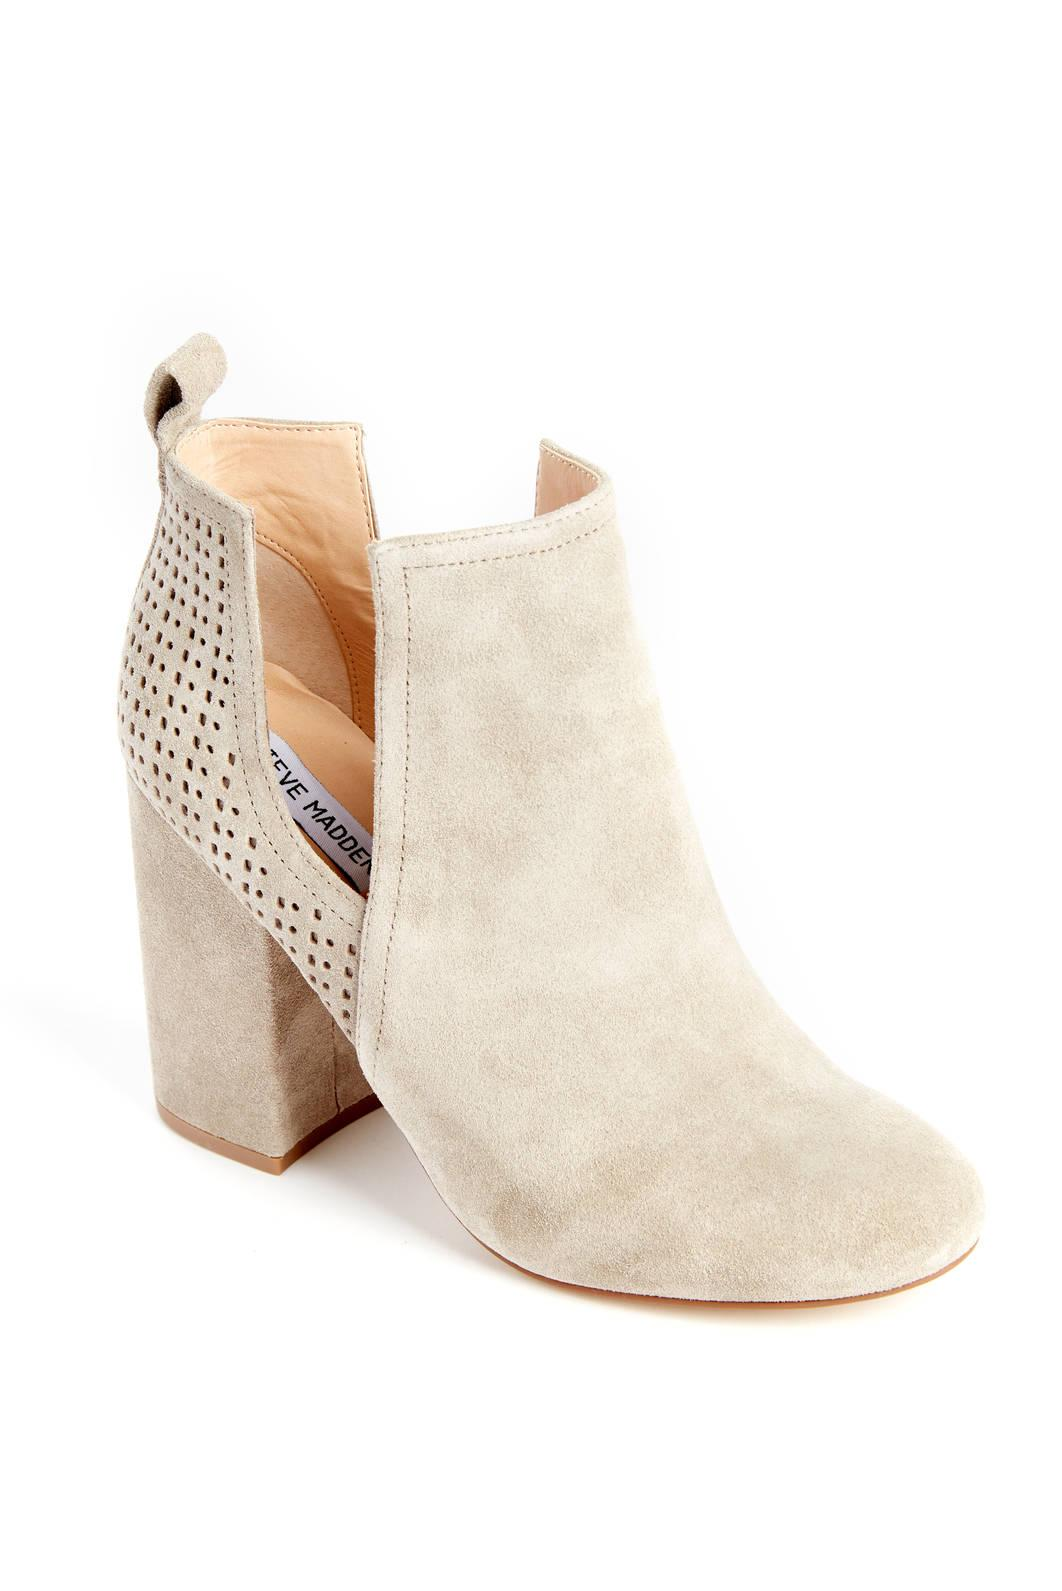 a393d9de09f Lyst - Steve Madden Cut Out Perforated Bootie in Natural